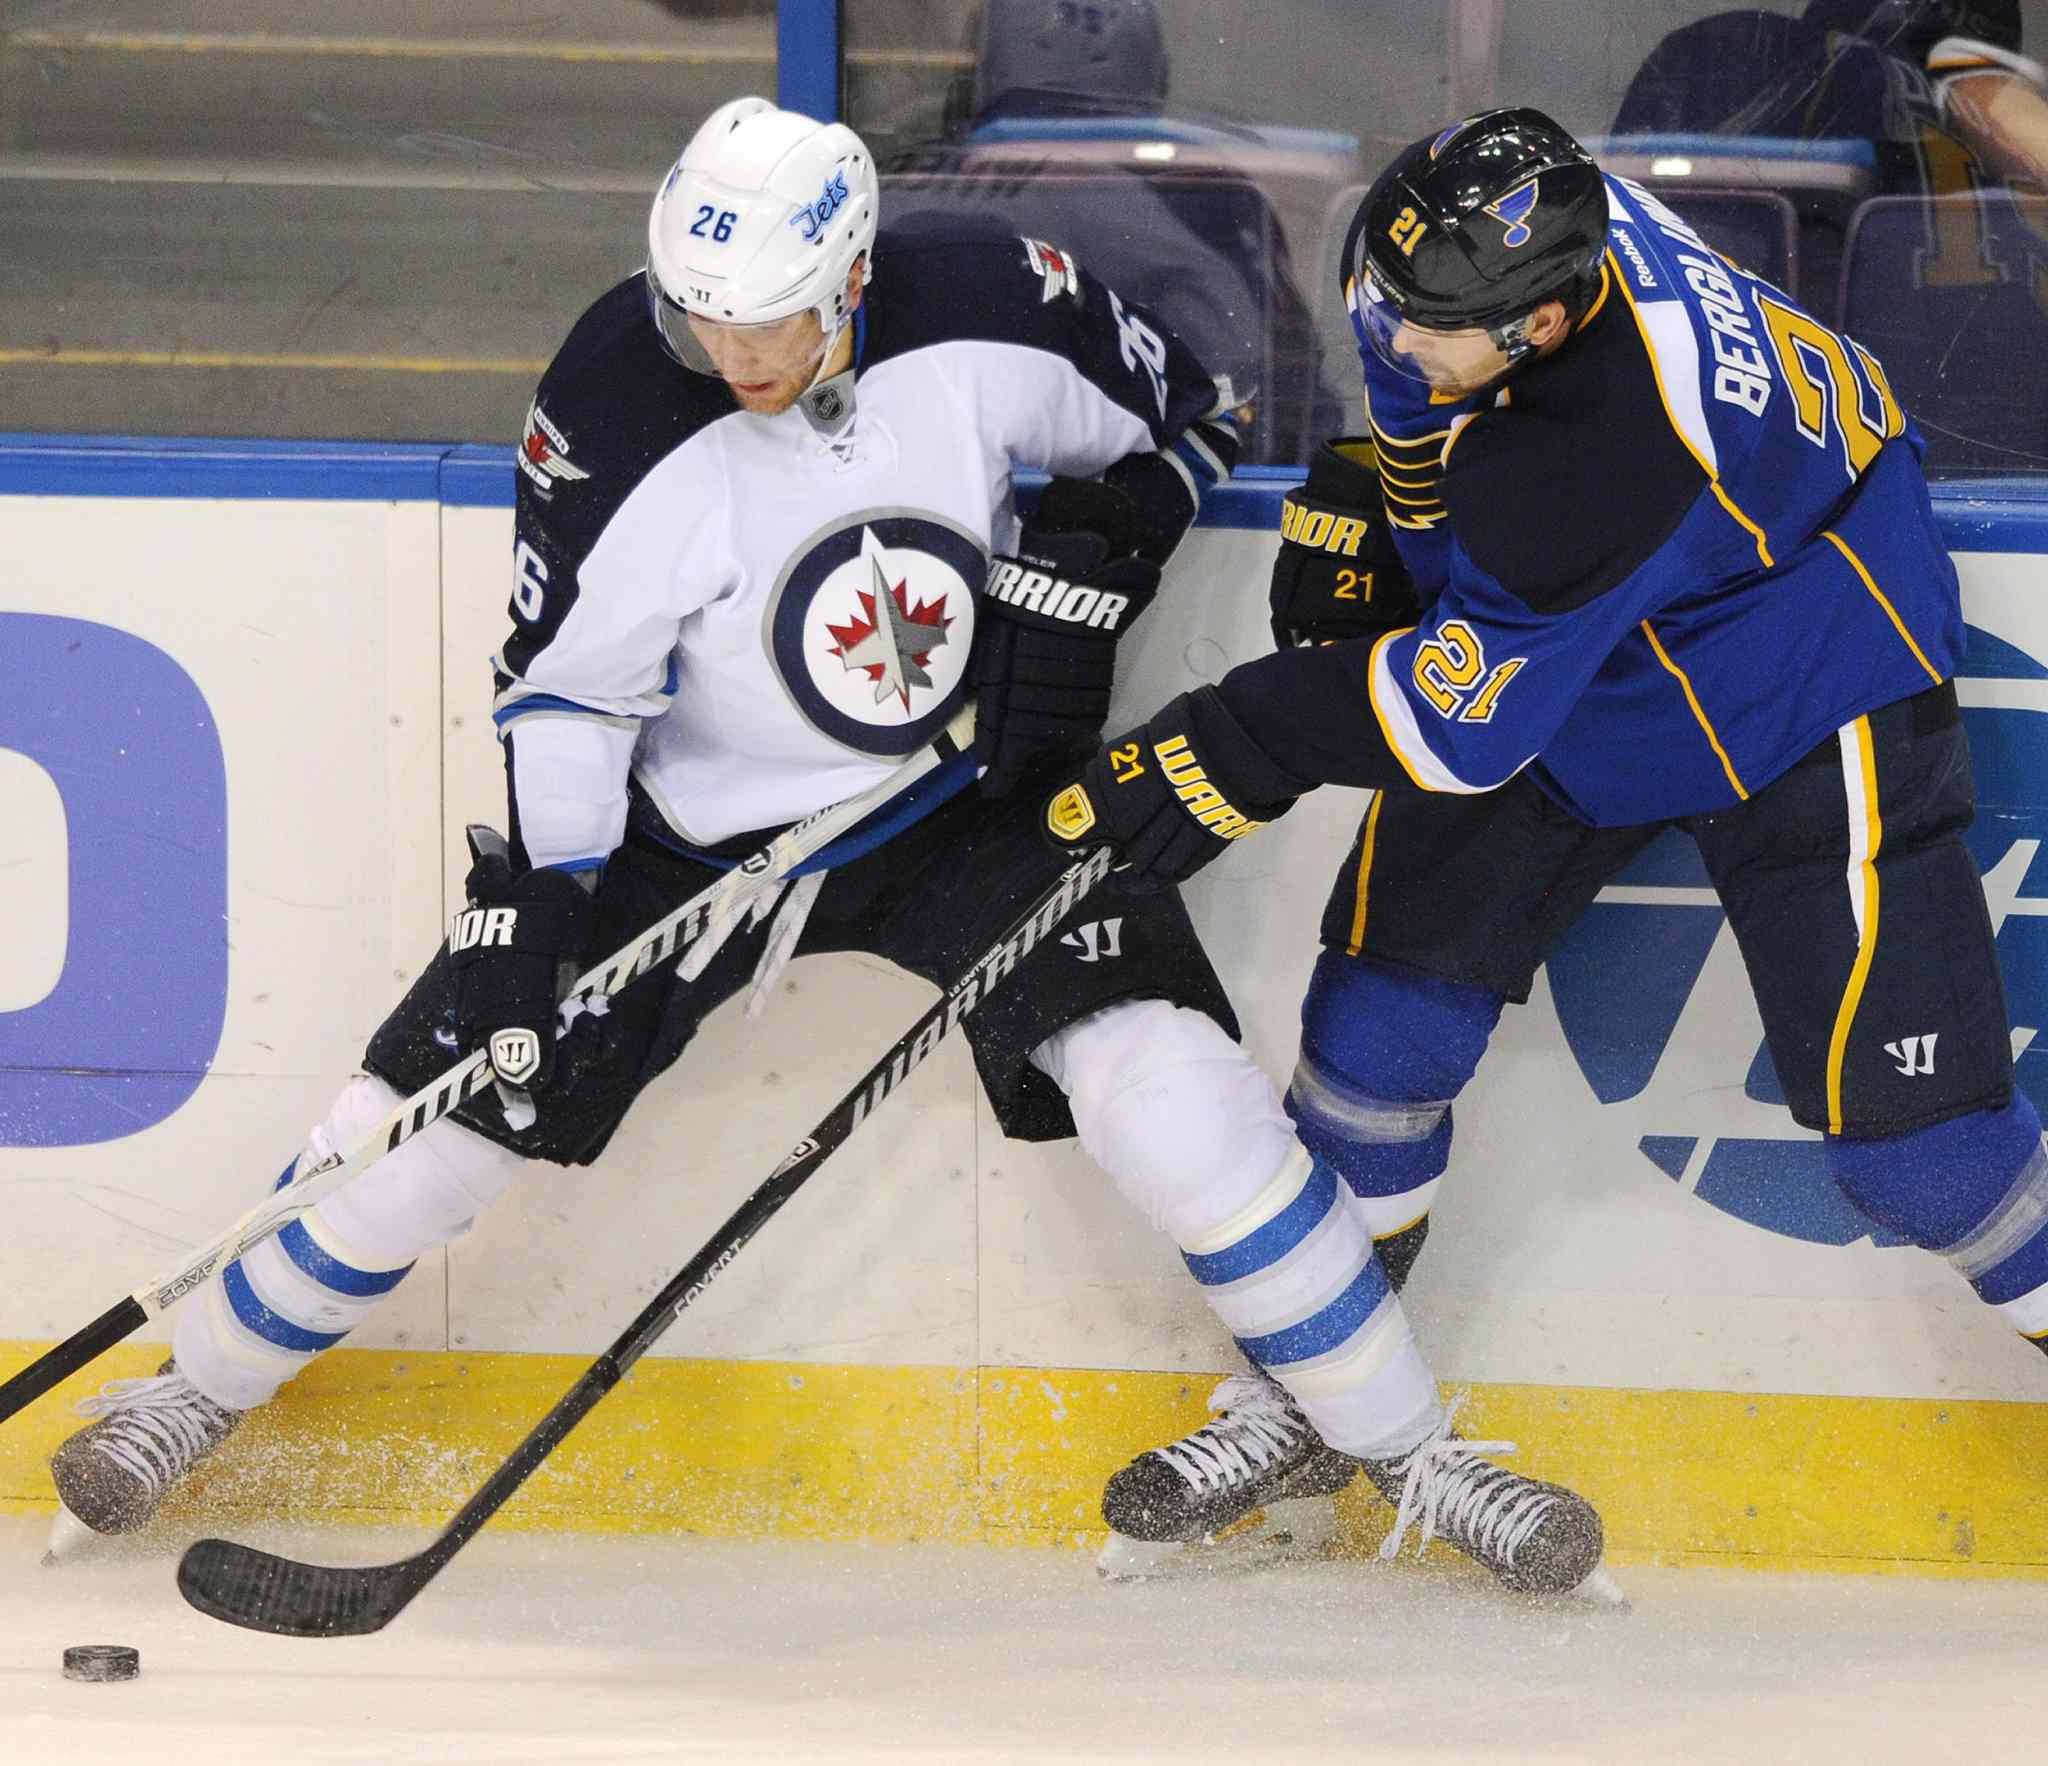 St. Louis Blues' Patrik Berglund and Winnipeg Jets' Blake Wheeler battle for the puck during the second period.